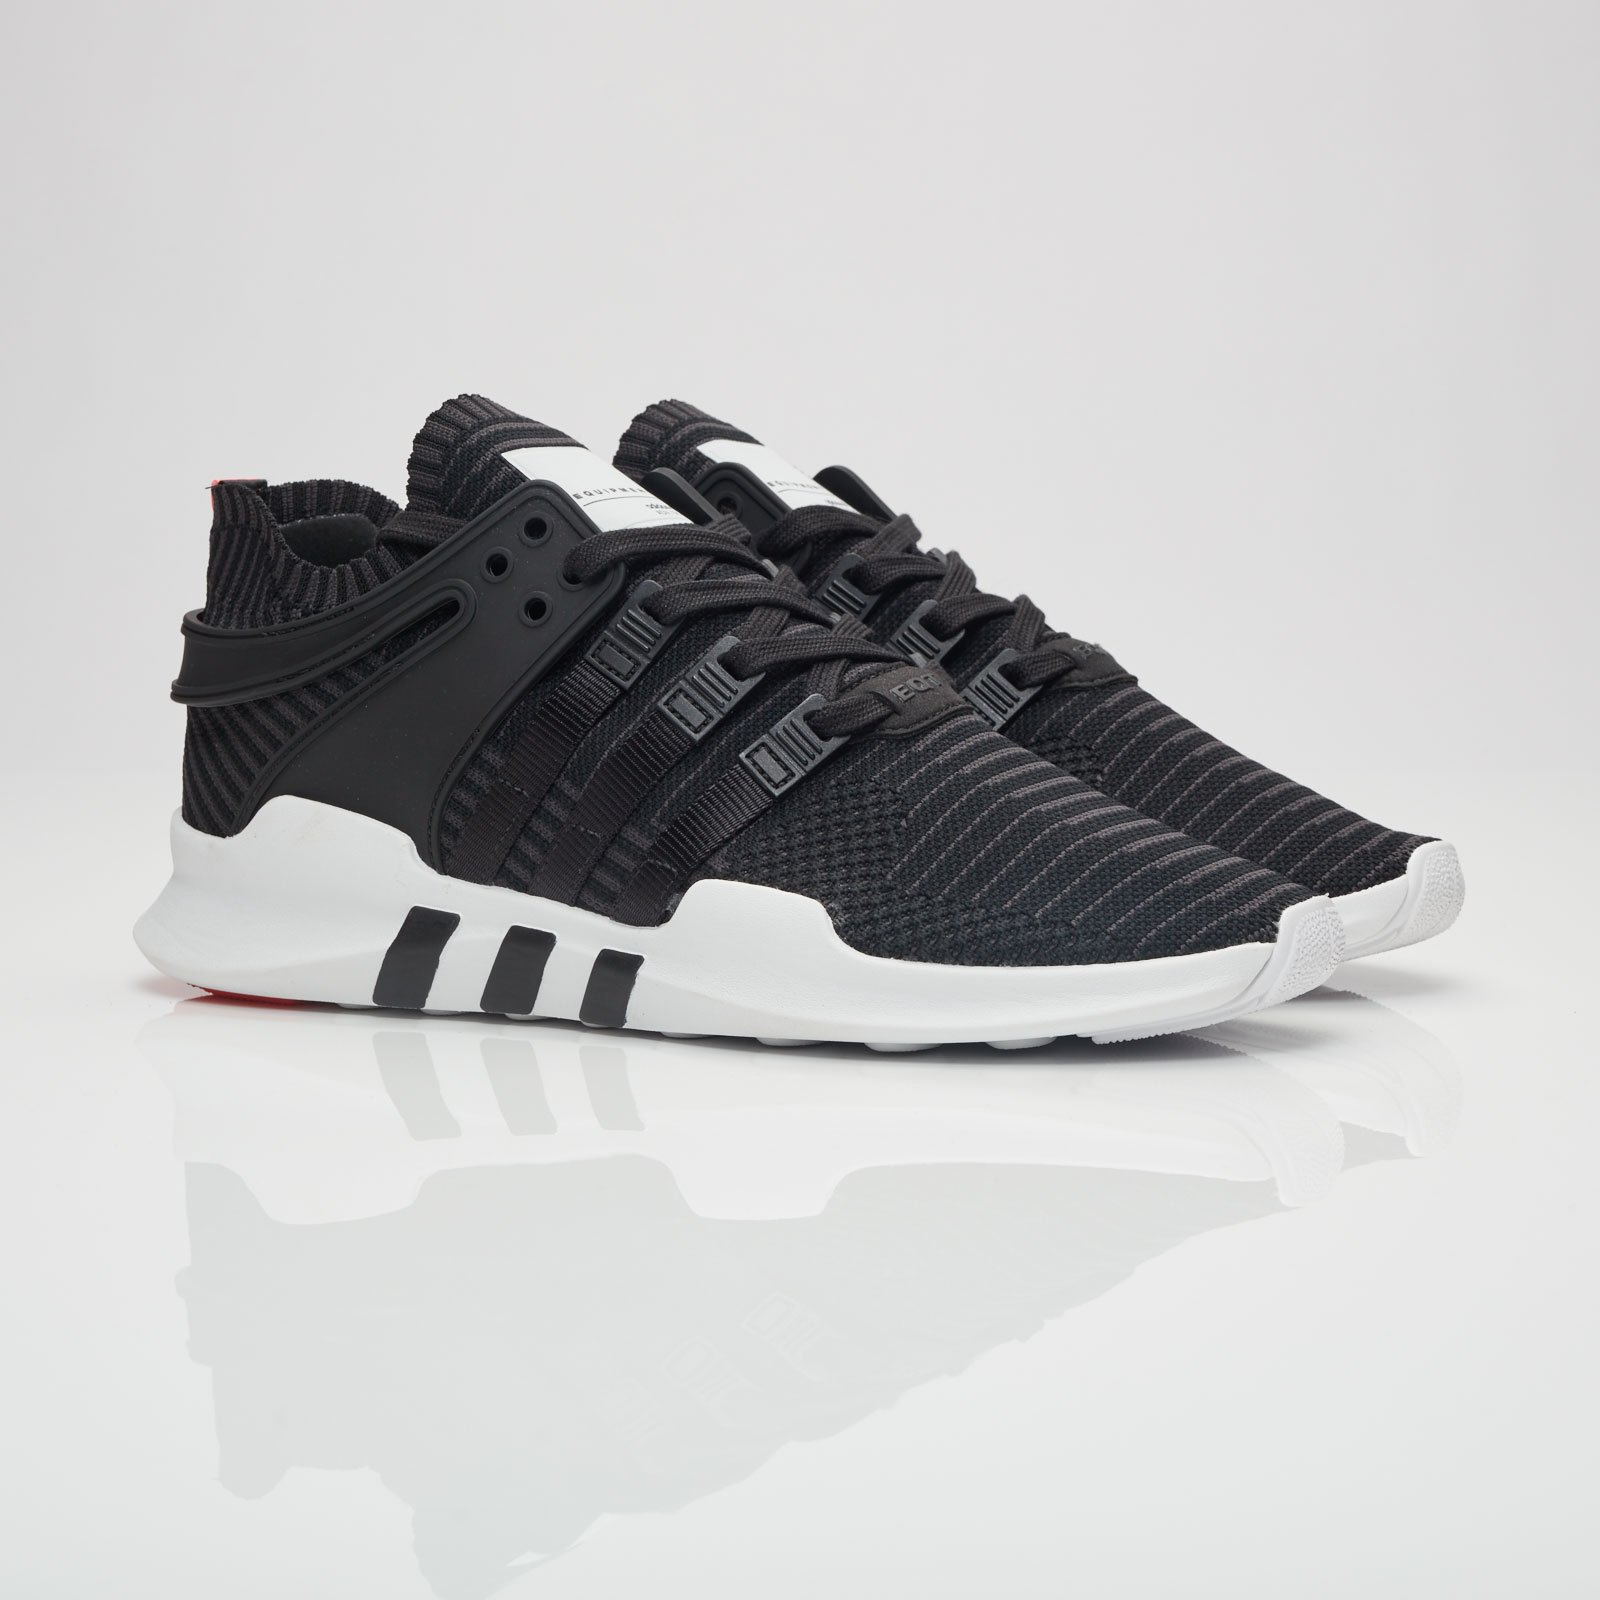 adidas Originals Eqt Support Adv Pk